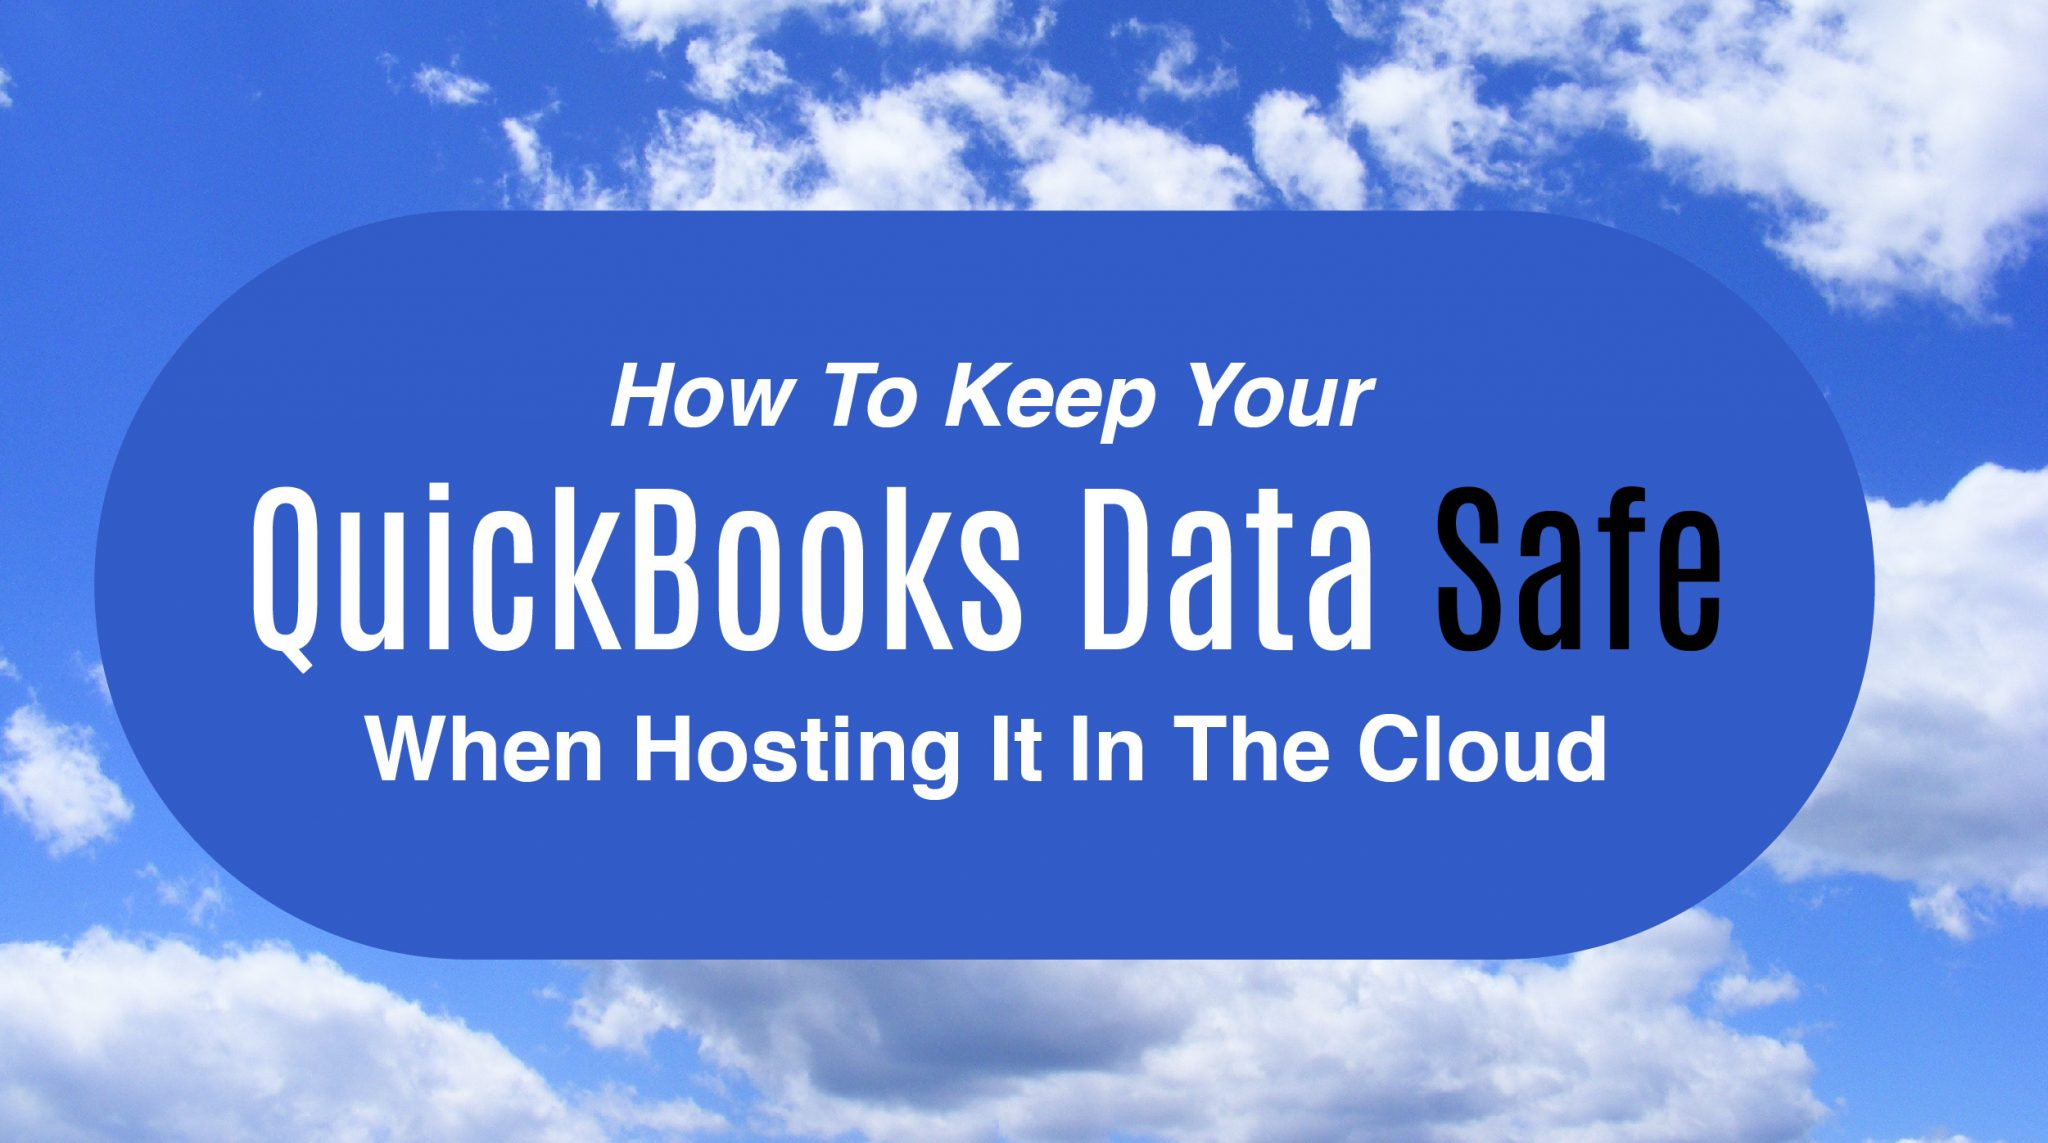 Keep Quickbooks Data Safe in the Cloud